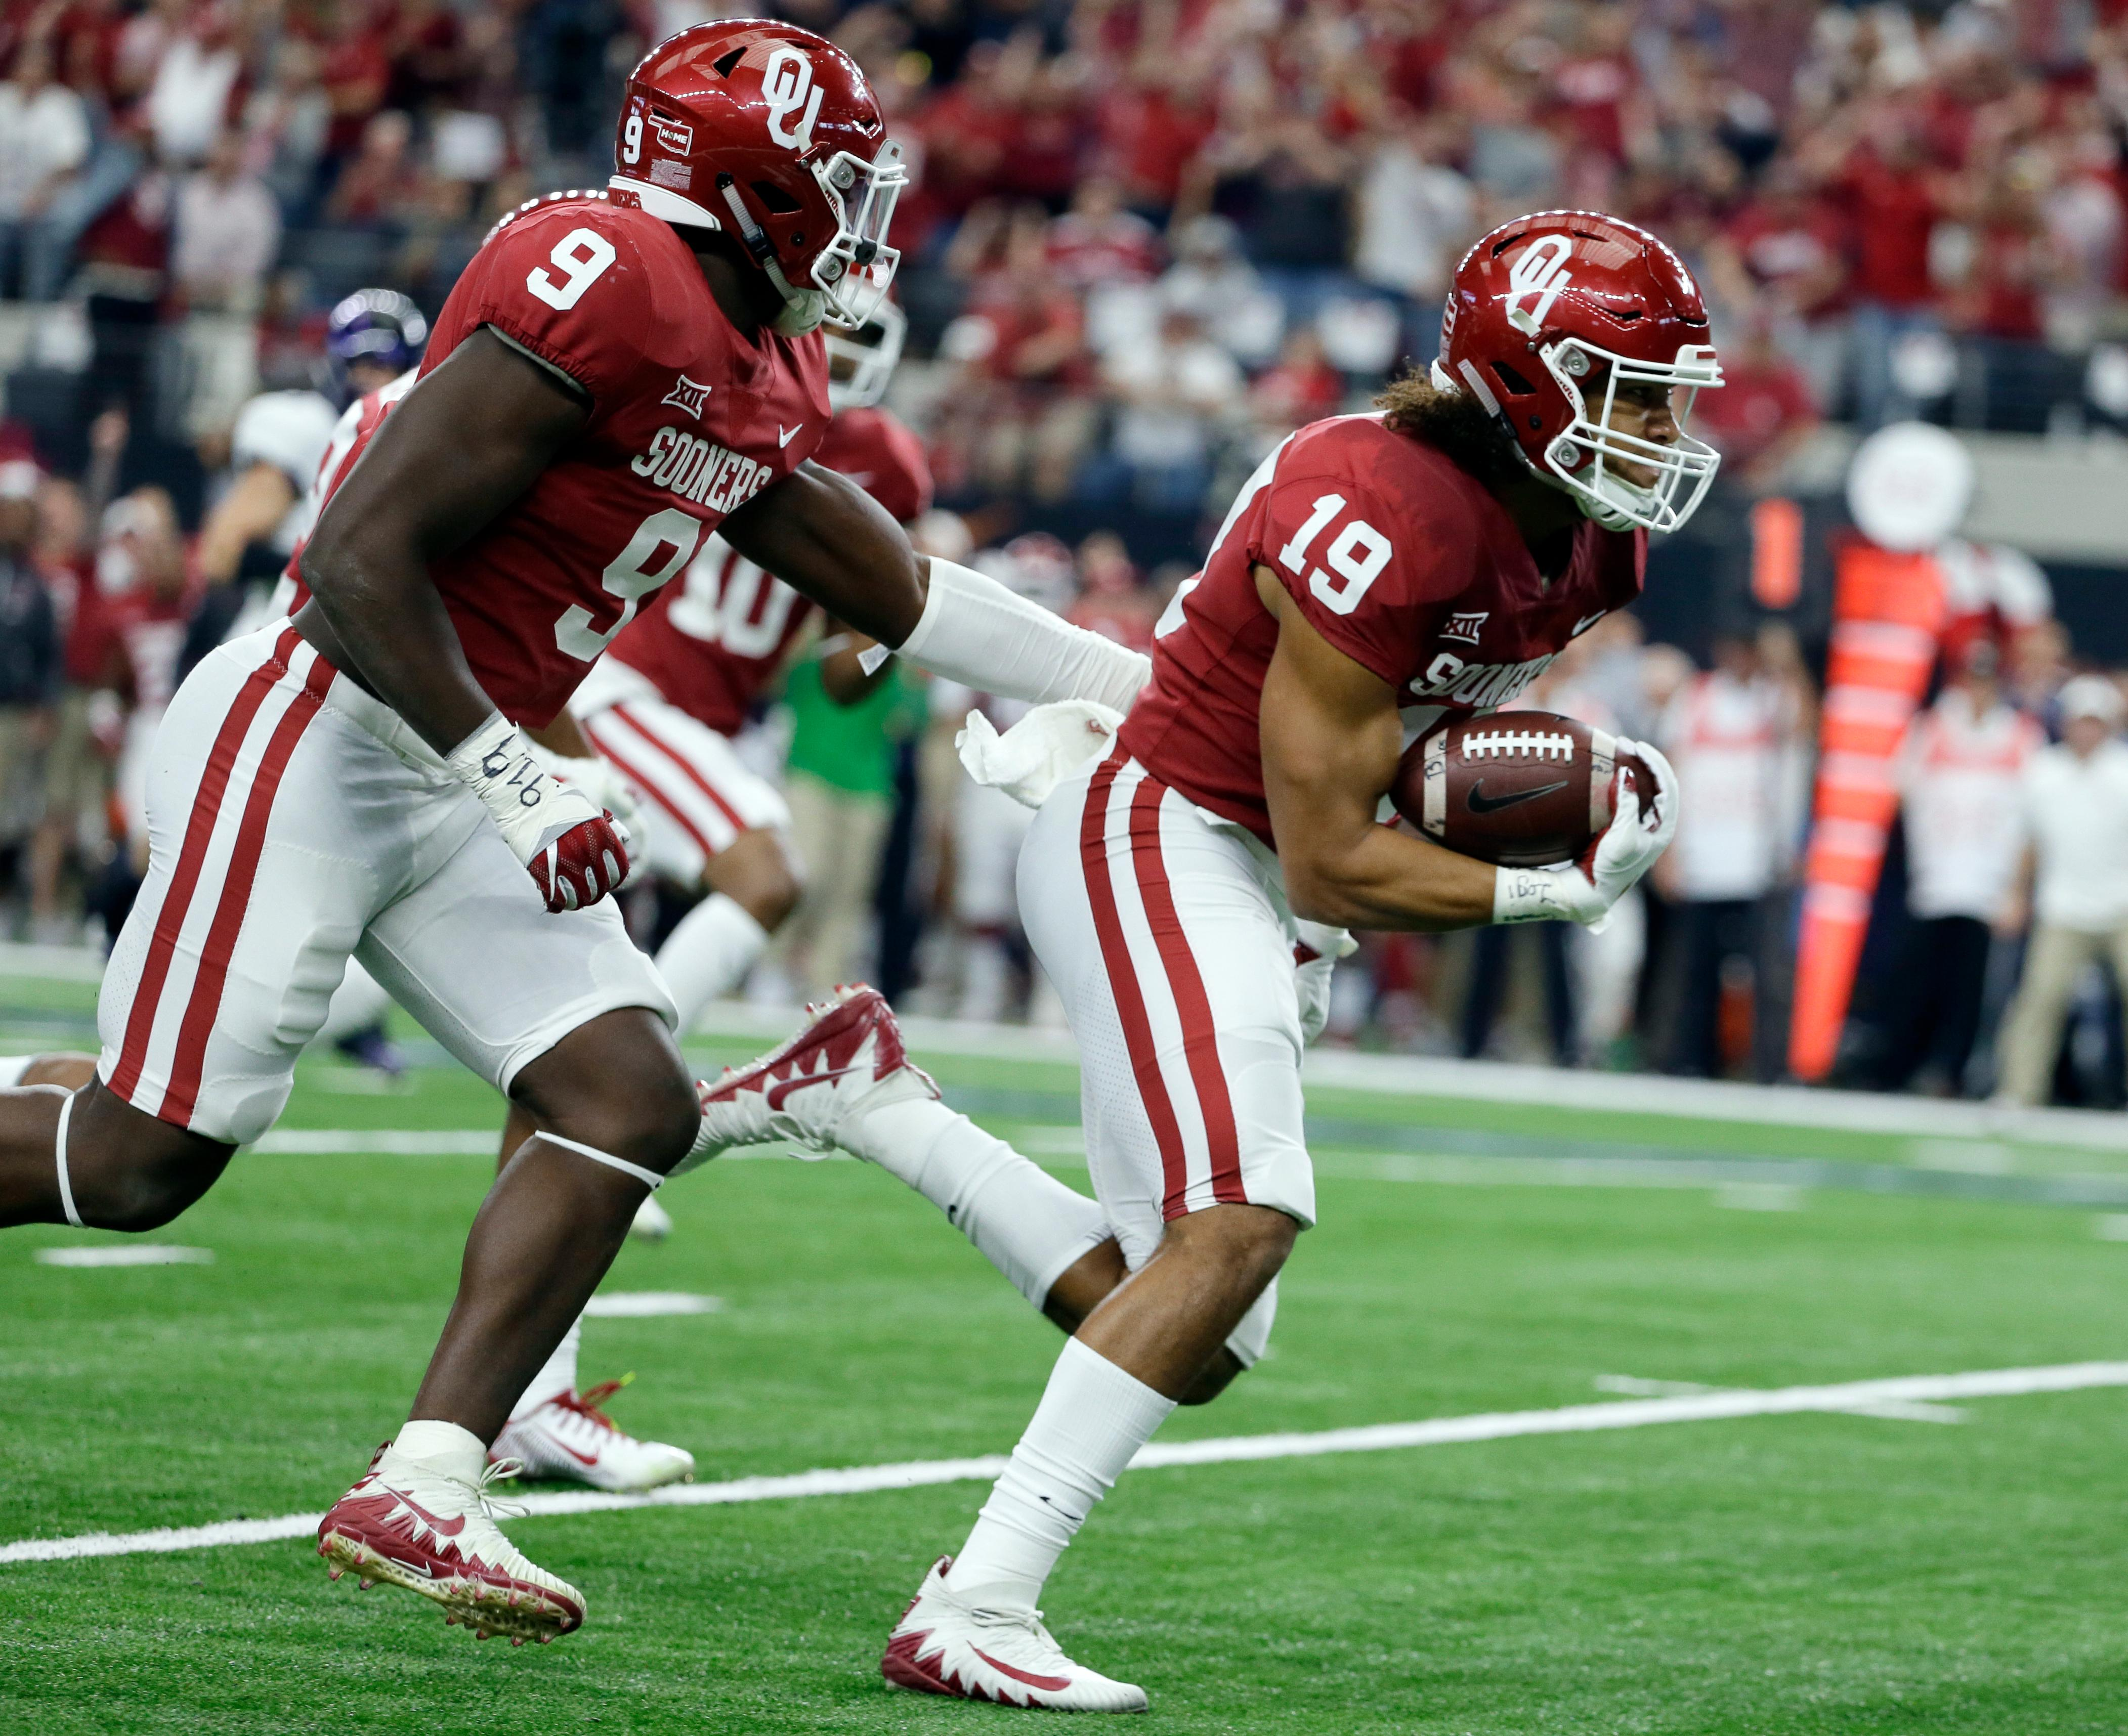 Oklahoma linebacker Kenneth Murray (9) follows linebacker Caleb Kelly (19) to the end zone for a touchdown after Kelly recovers a TCU Kyle Hicks fumble in the first half of the Big 12 Conference championship NCAA college football game, Saturday, Dec. 2, 2017, in Arlington, Texas. (AP Photo/Tony Gutierrez)